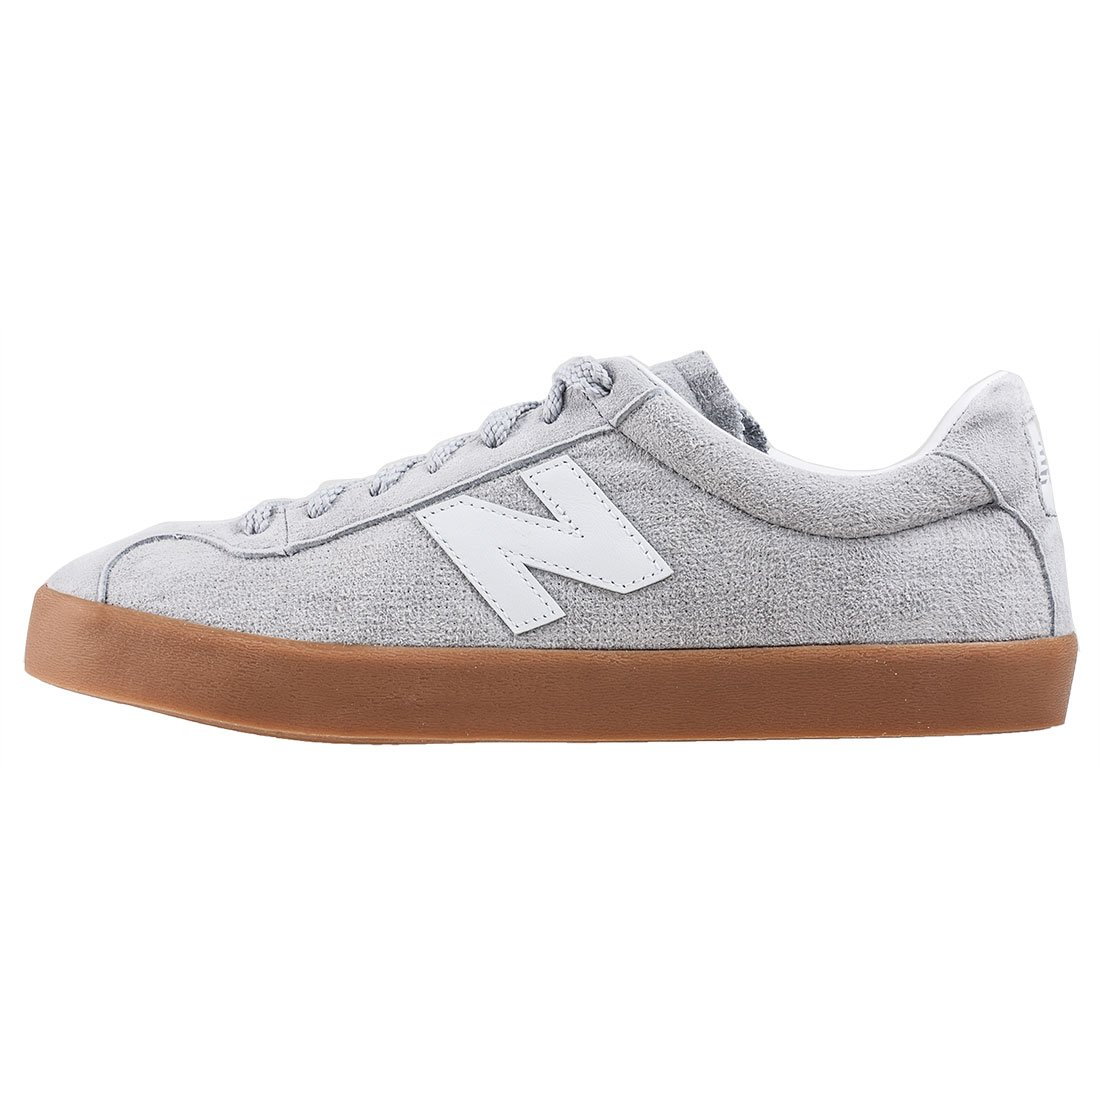 Caligrafía melón hacha  New Balance Mens Ml22gre Men Fashion Sneakers